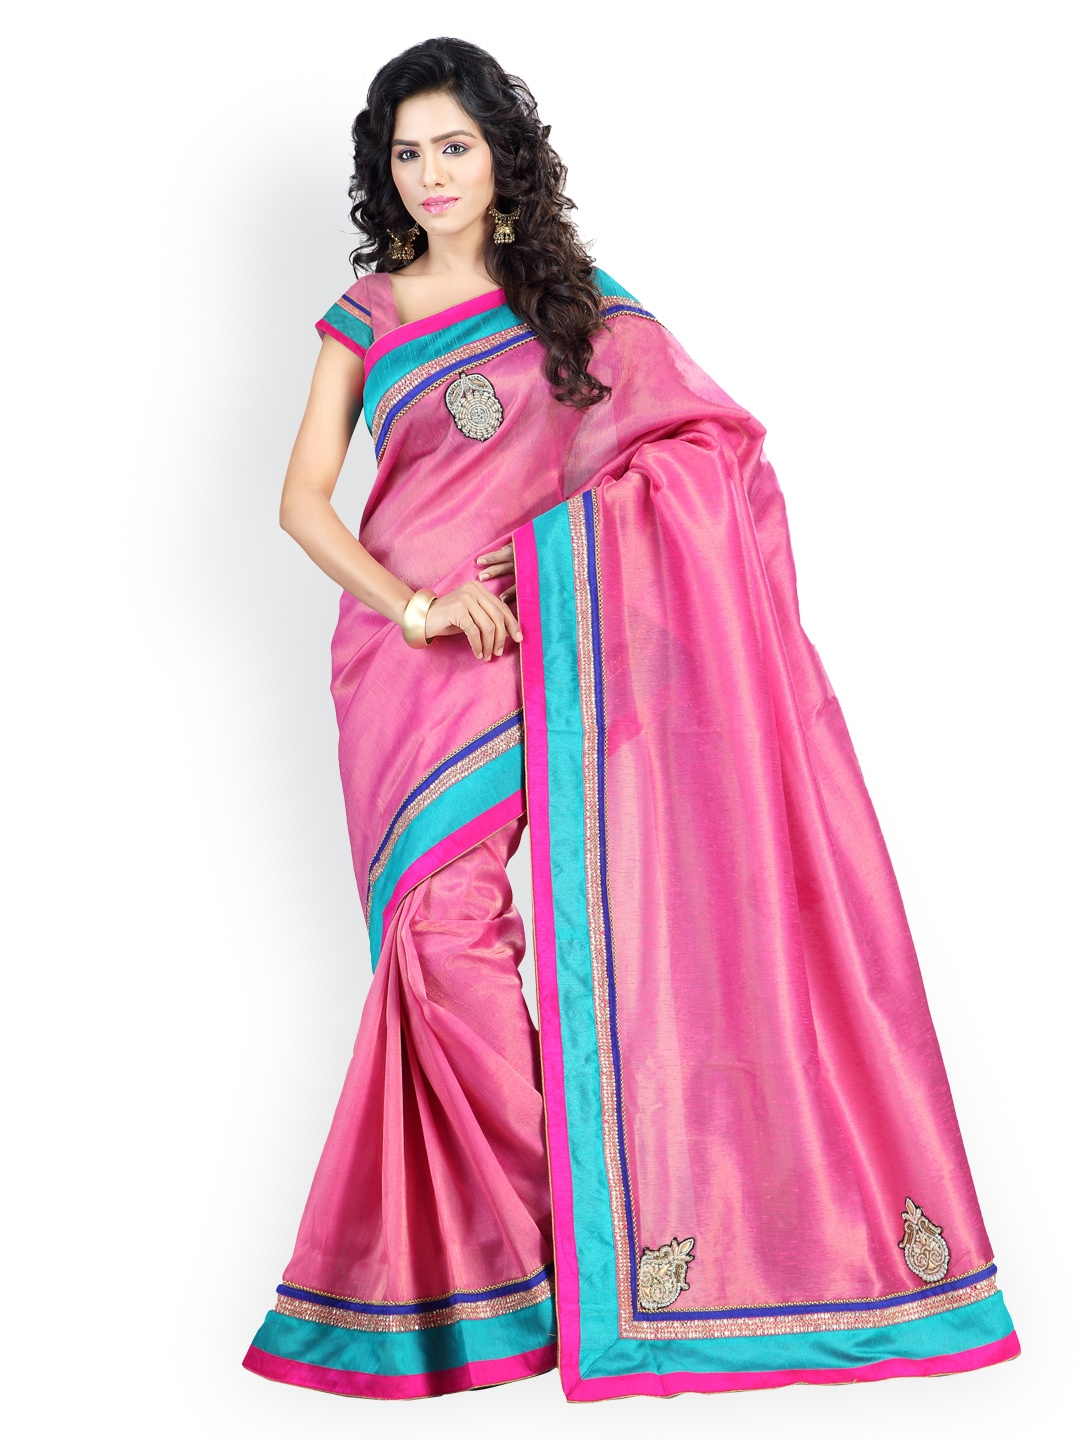 Myntra Kashish Lifestyle Pink Embroidered Jute Fashion Saree 793742 Buy Myntra Kashish